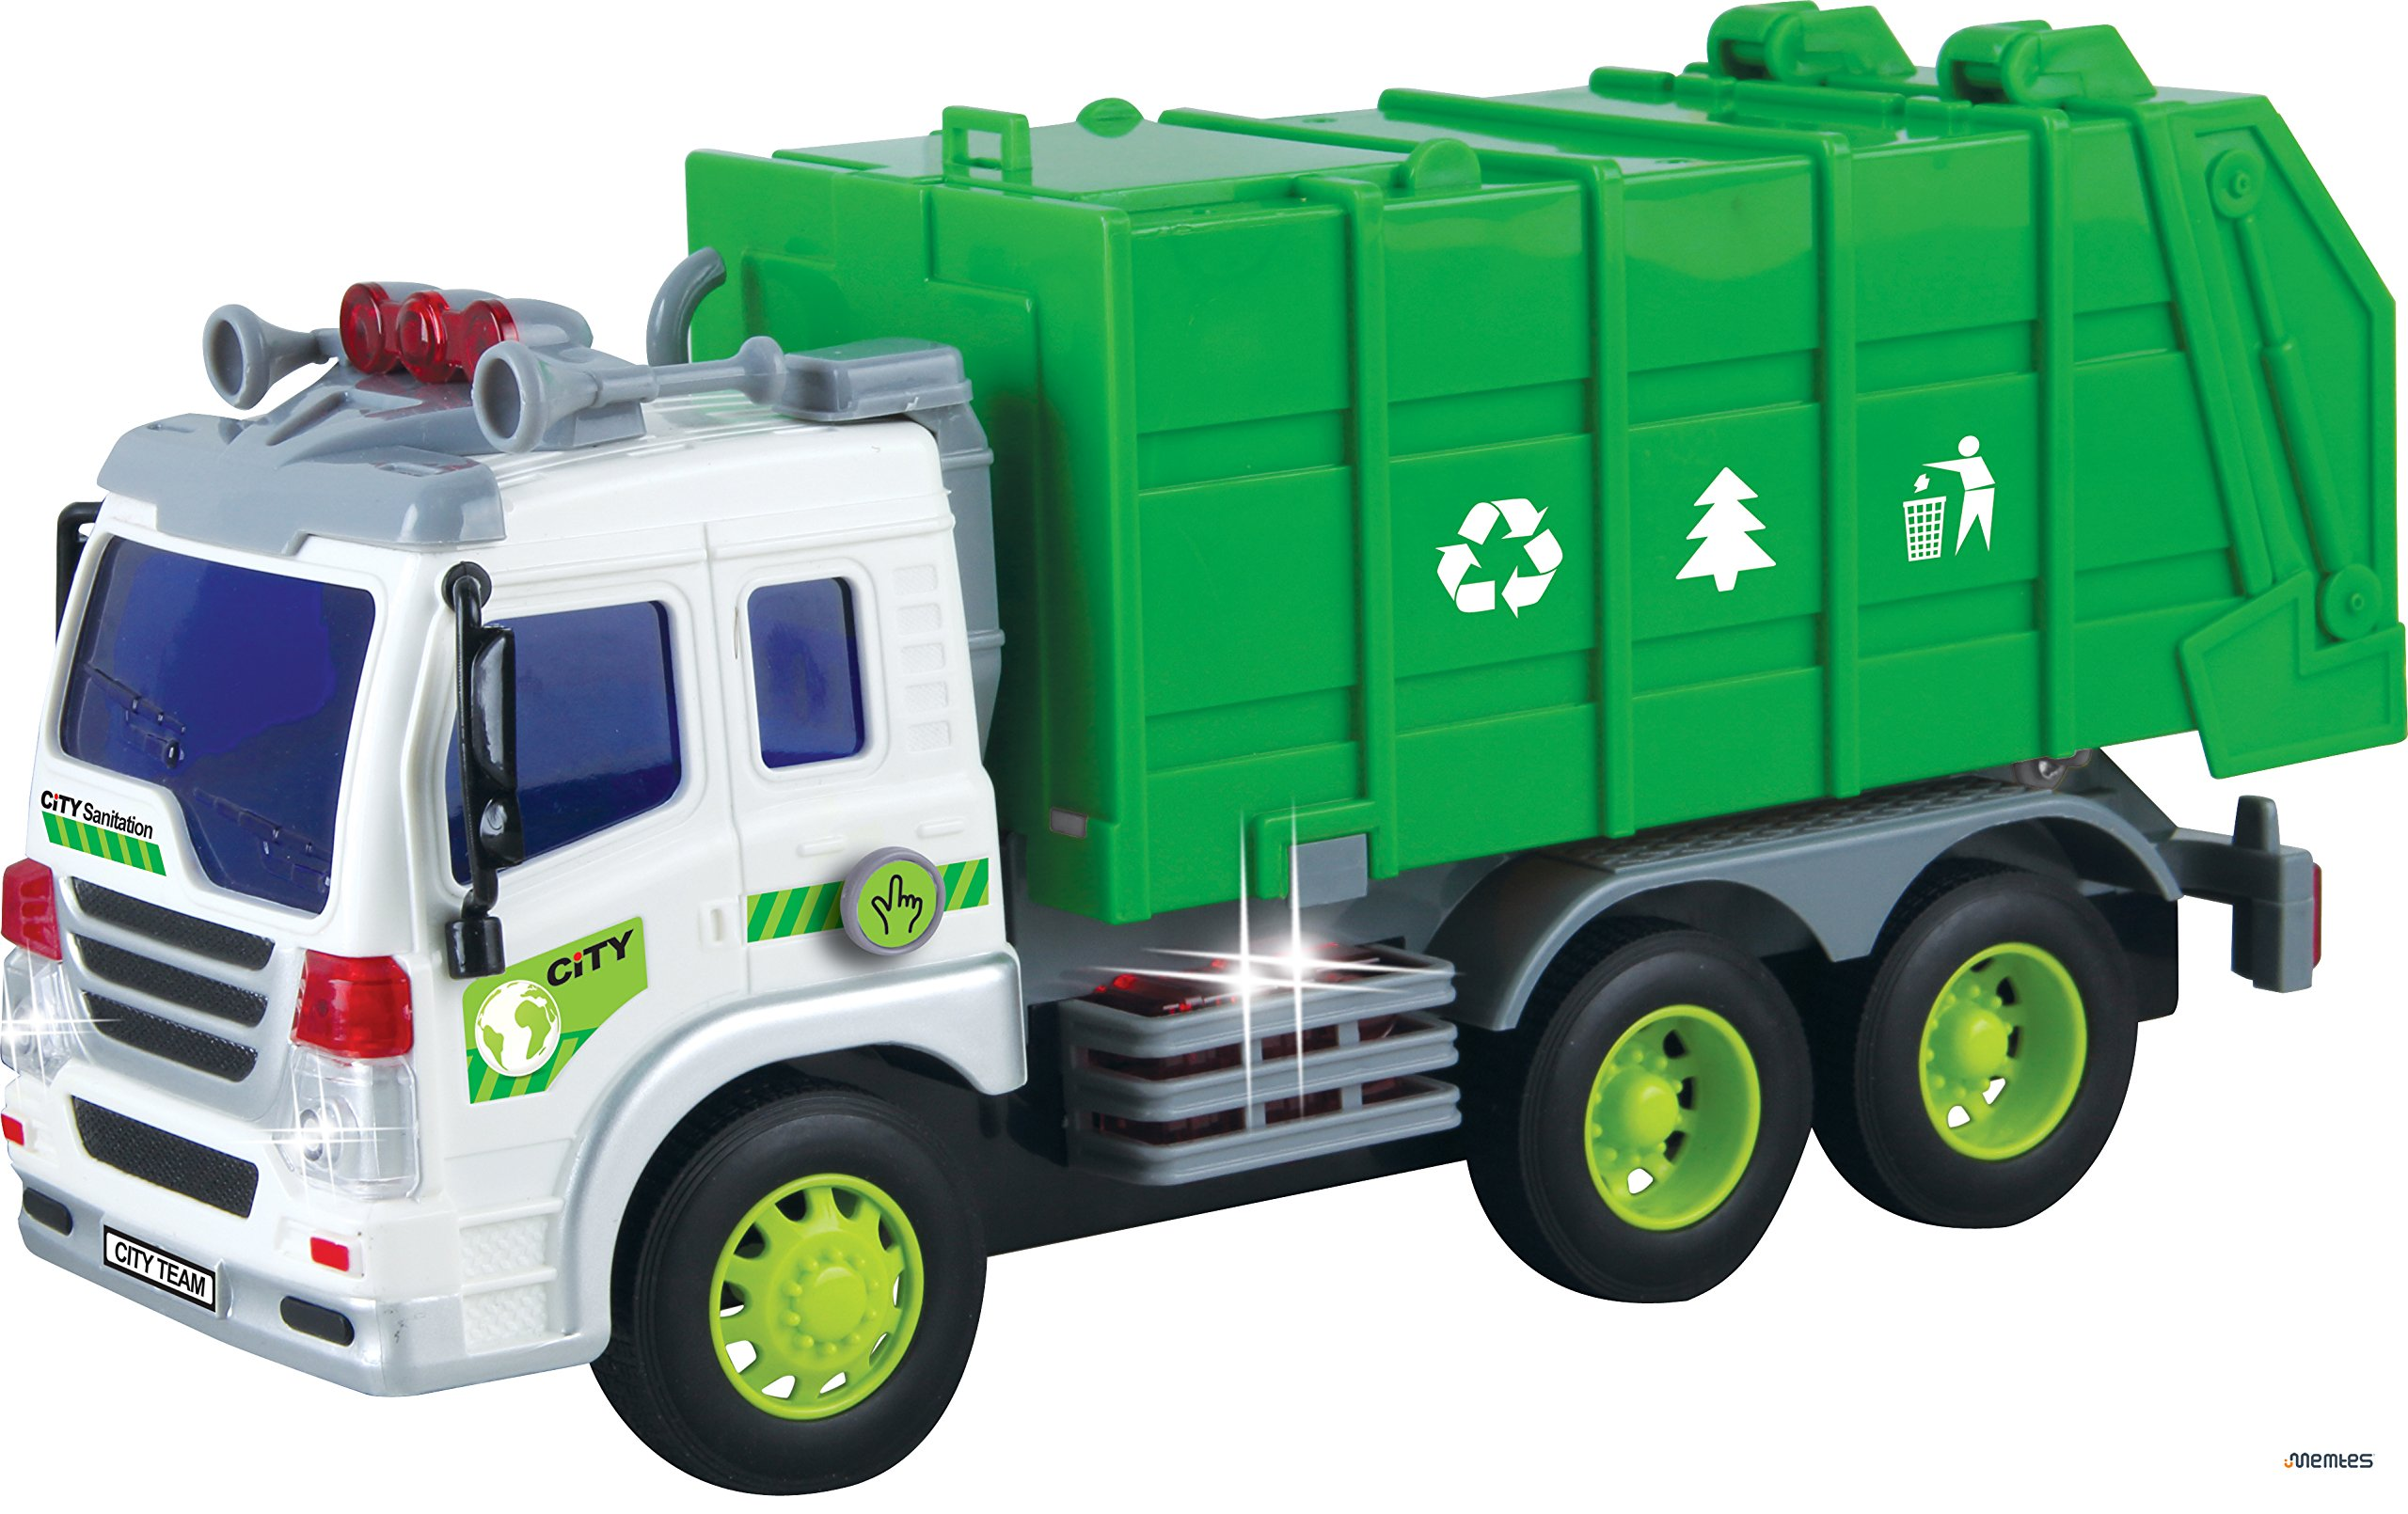 Buy Memtes Friction Powered Garbage Truck Toy With Lights And Sound For Kids